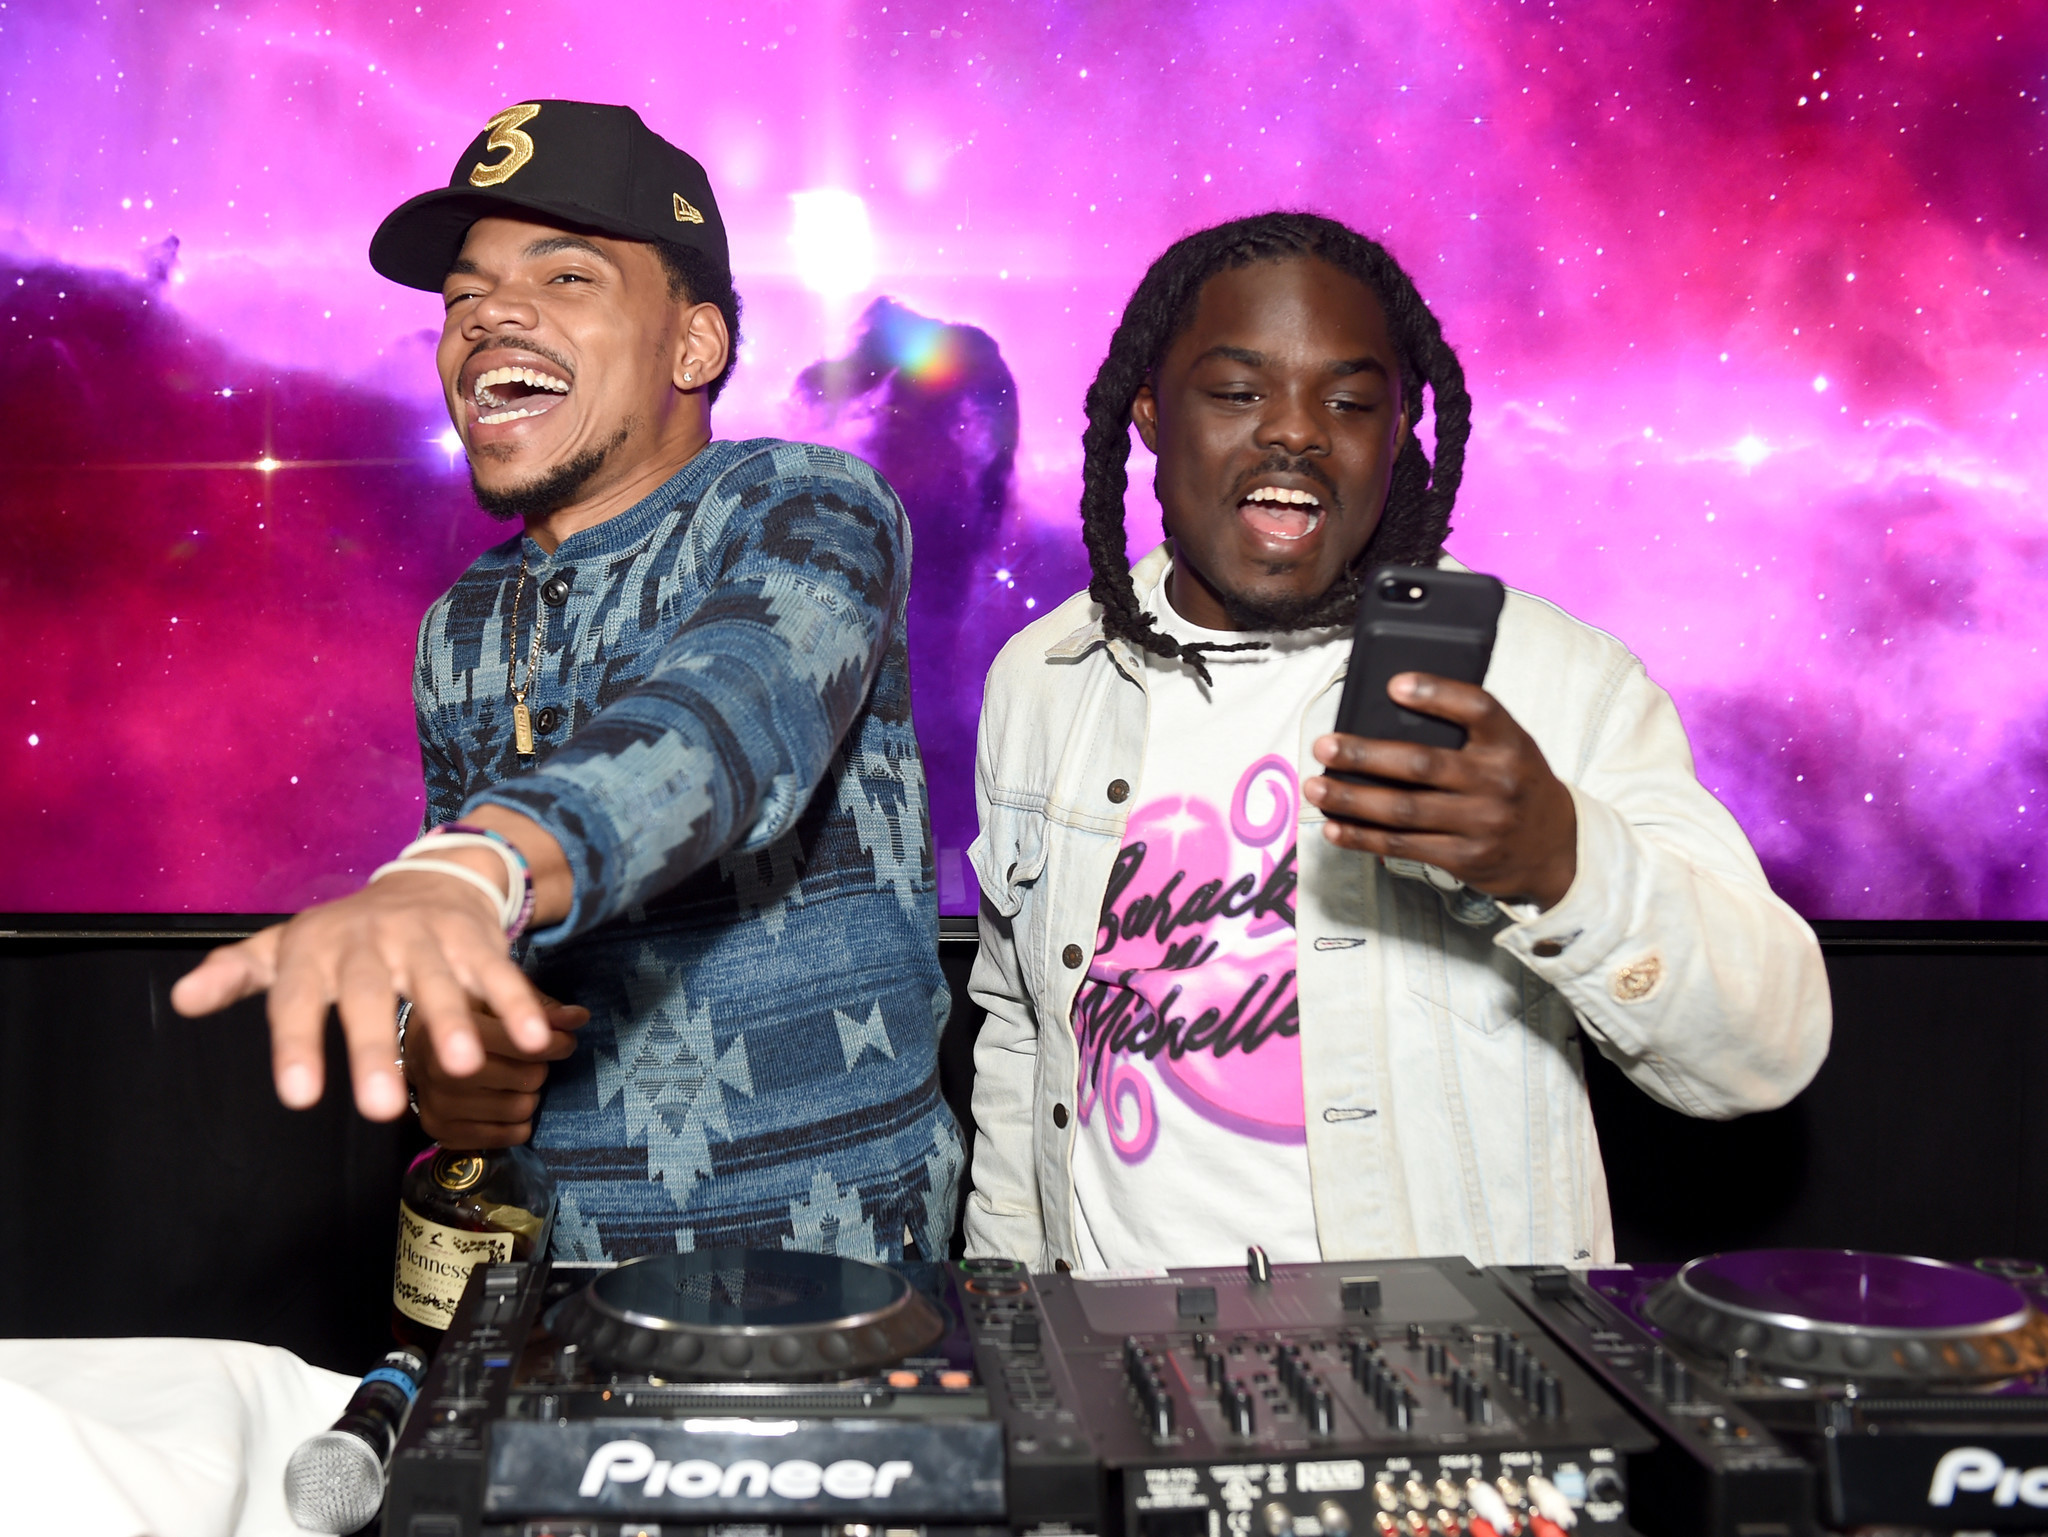 The coloring book grammy - Armed With Three Grammys Chance The Rapper Celebrates With Lavish Party At The Chateau Marmont La Times